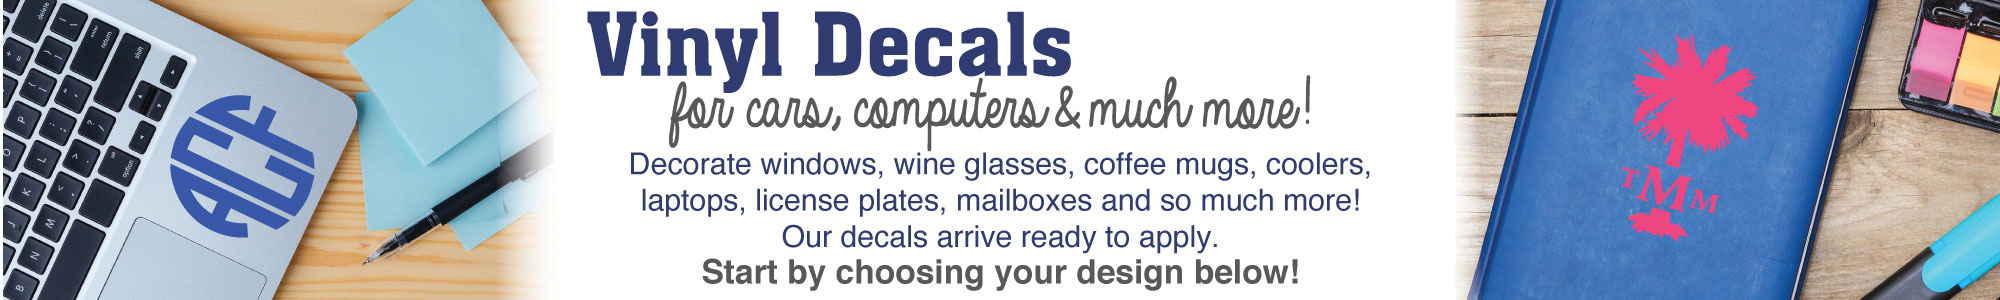 Vinyl decals. For cars, computers & much more!